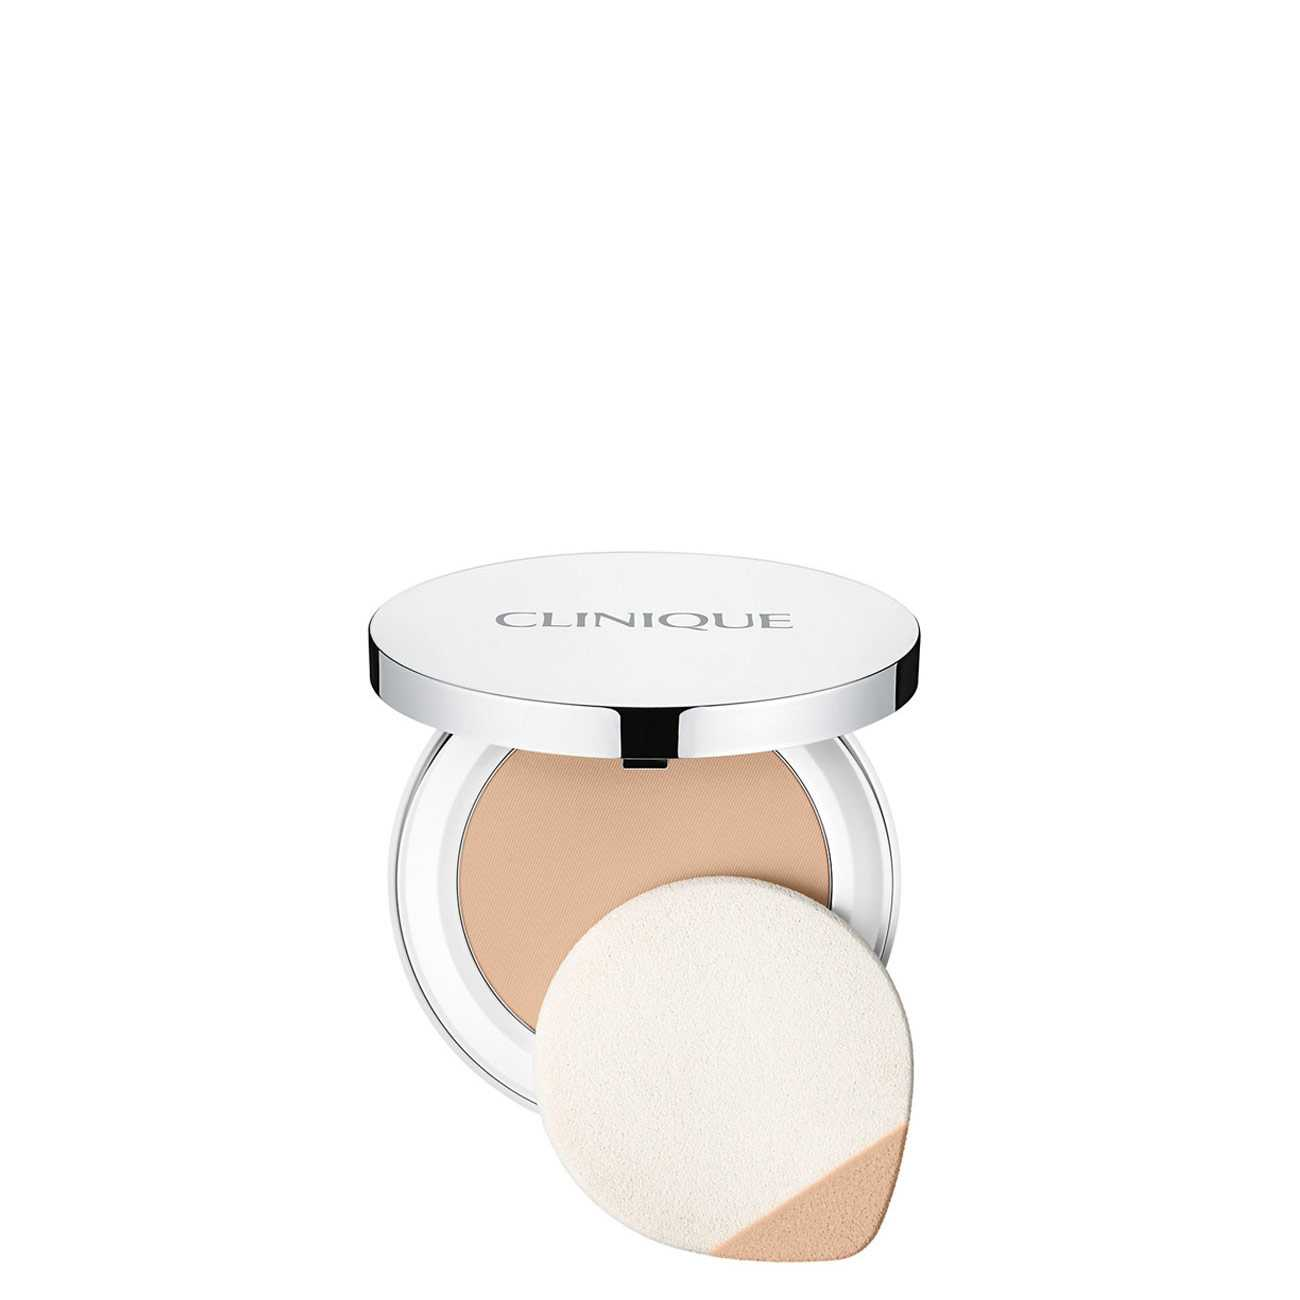 BEYOND PERFECTING POWDER FOUNDATION 14 ML Ivory 6